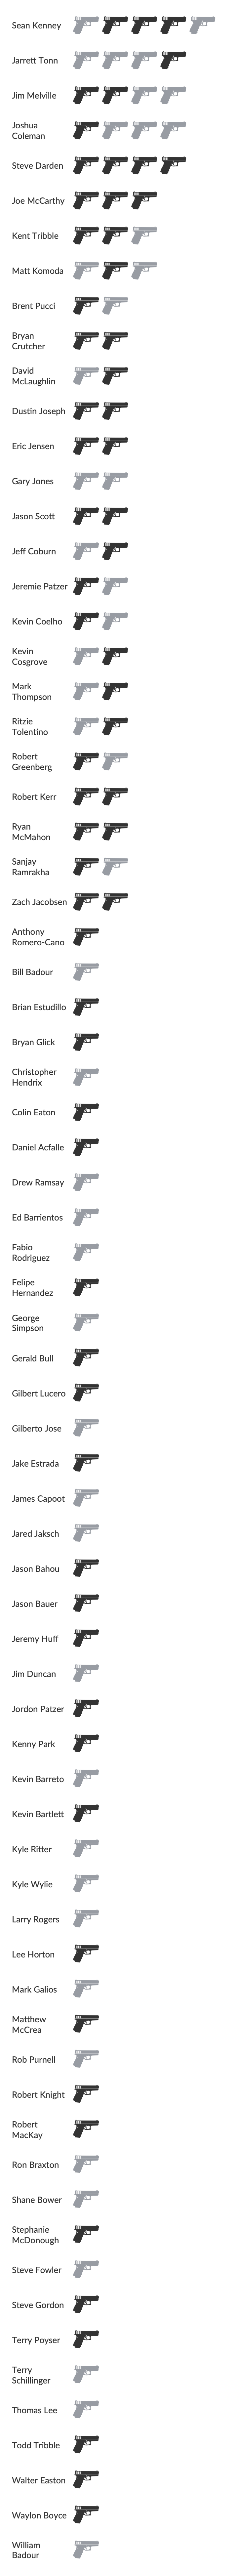 An infographic of Vallejo police officers who have been in shootings since 2000